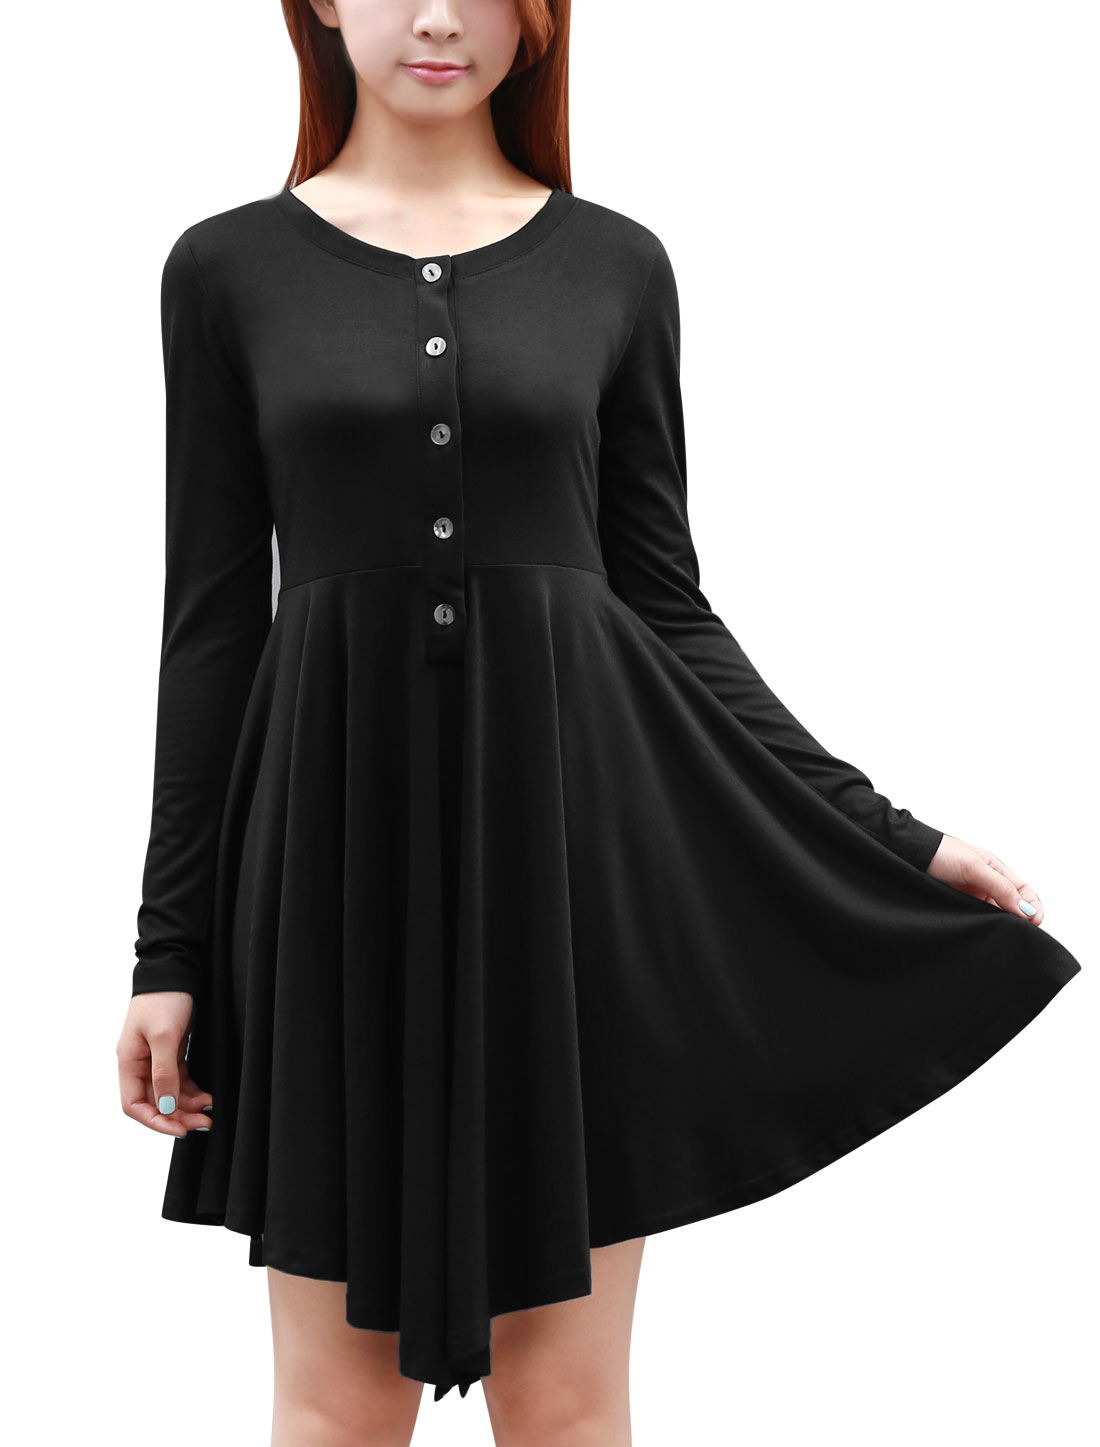 Women Button-Up Front Asymmetric Hem Soft Autumn Dress Black XL